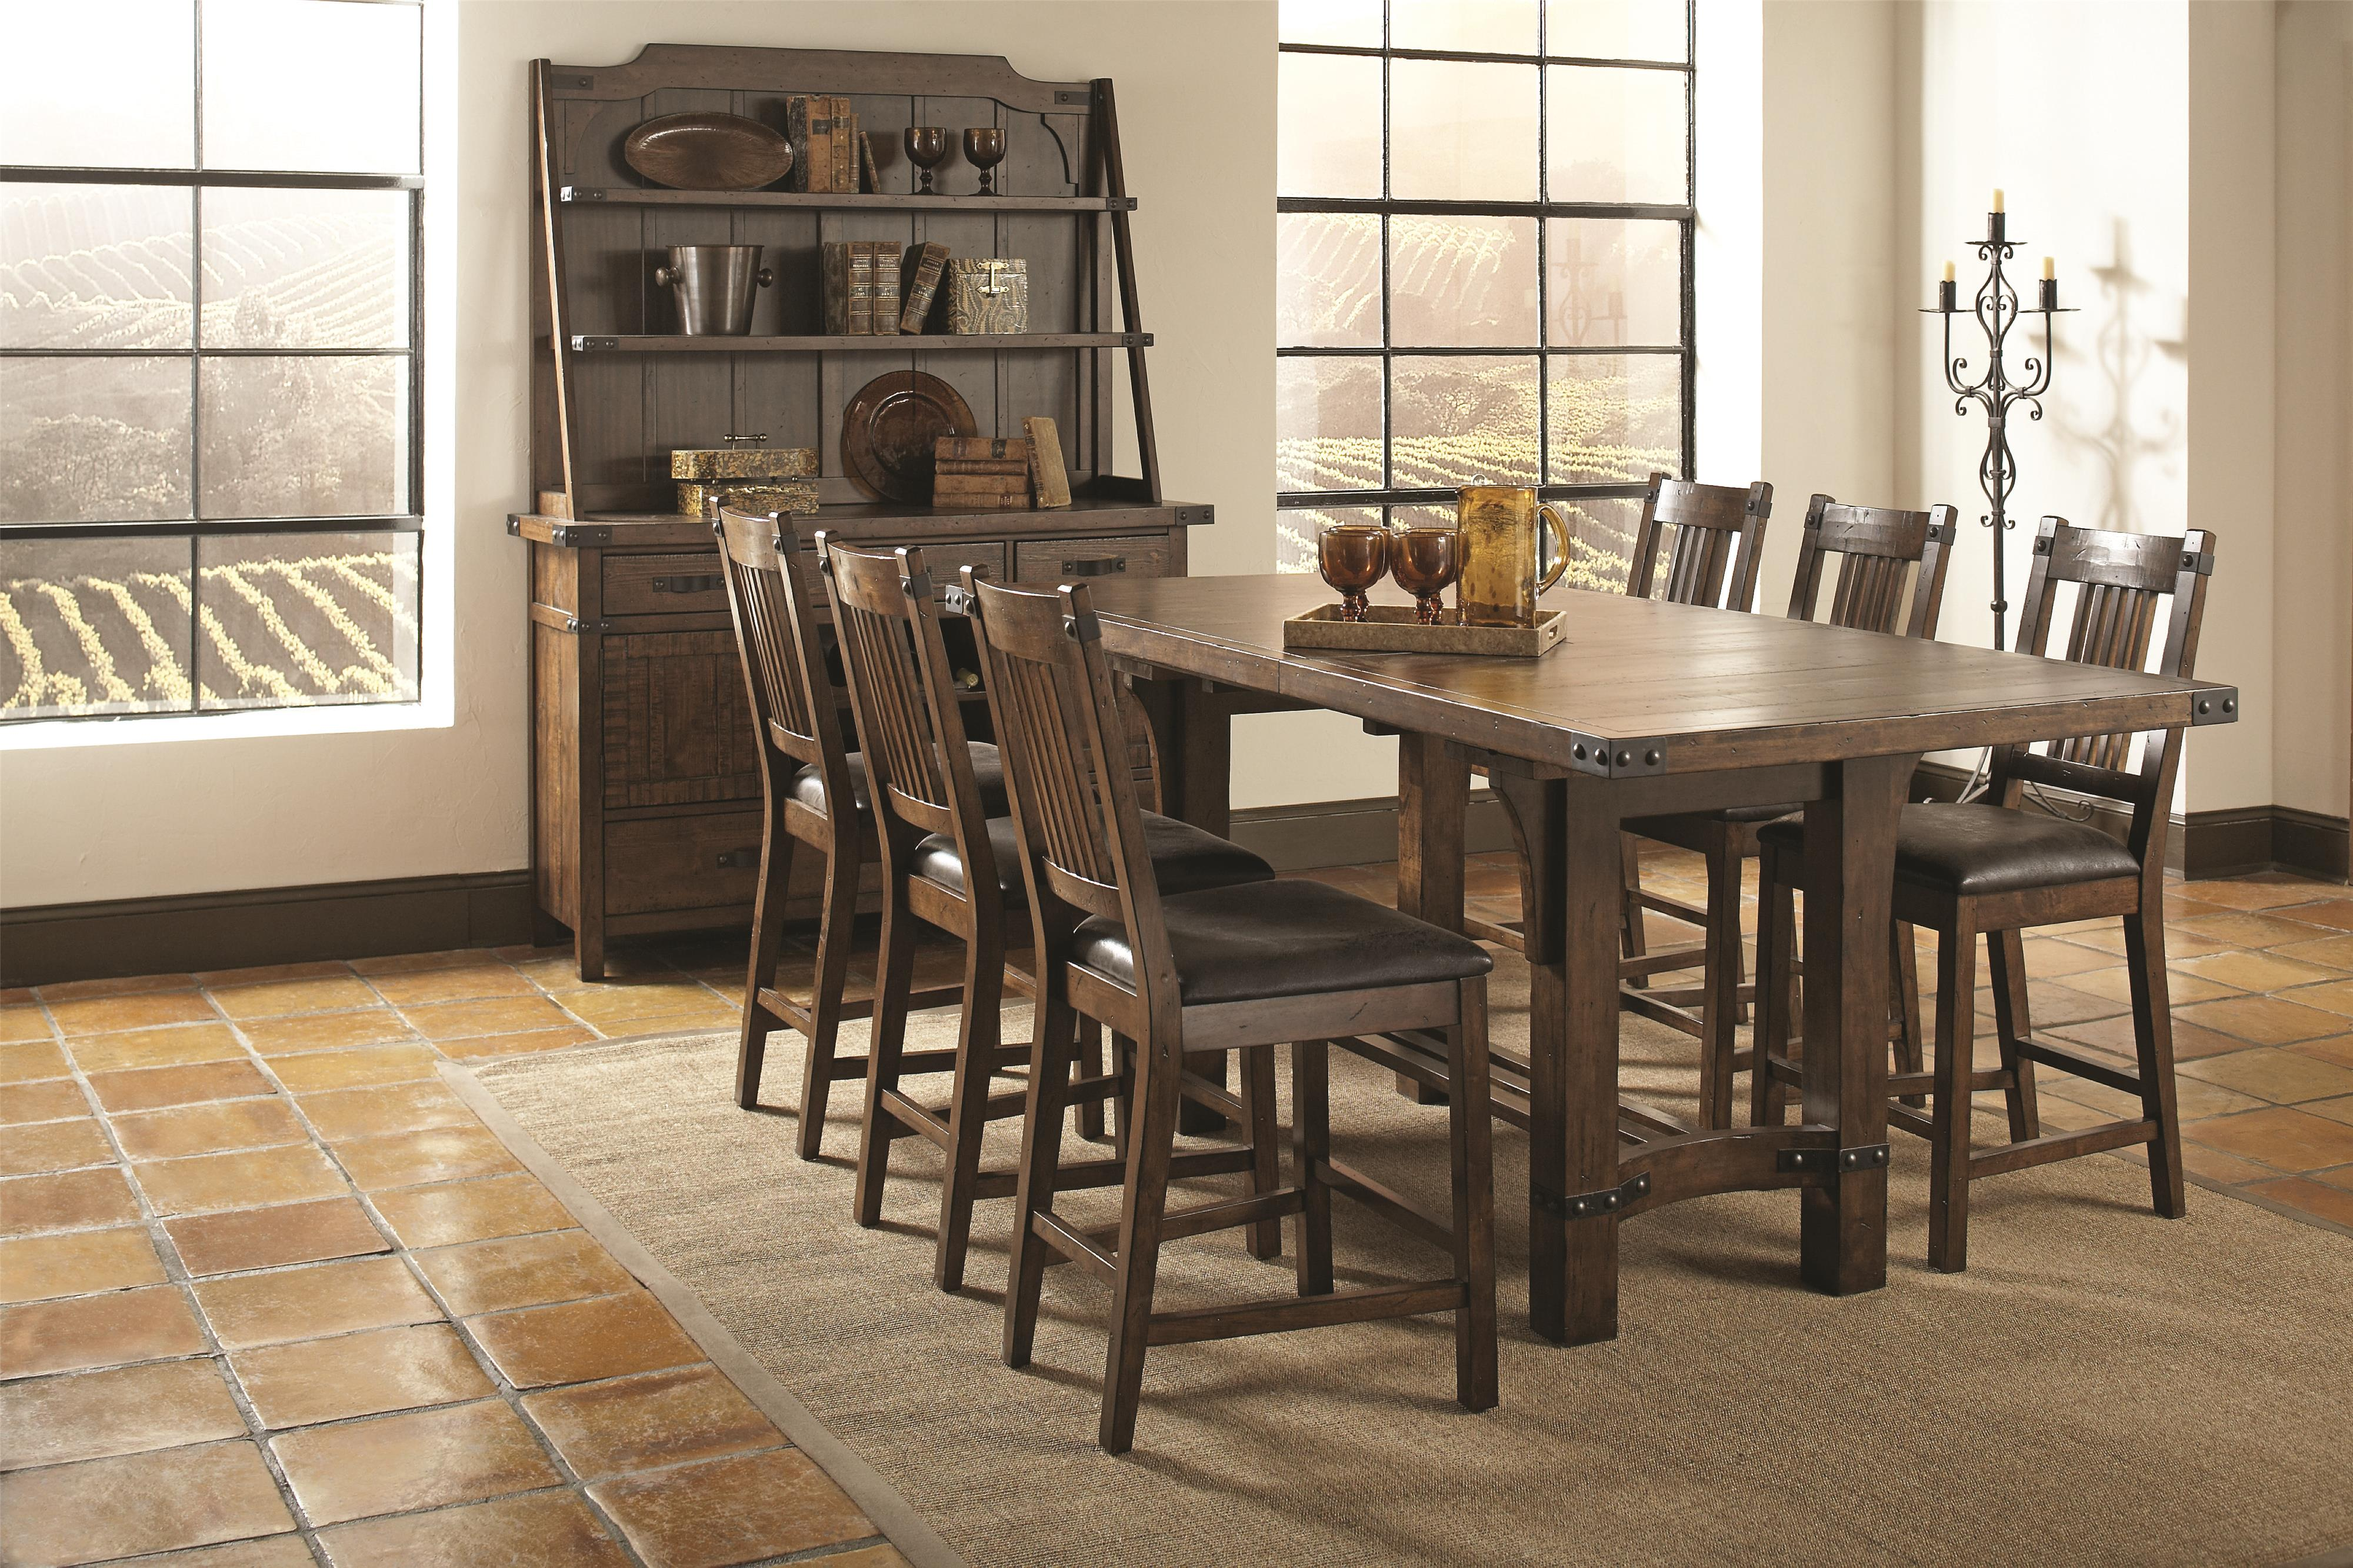 Super Padima 5 piece rustic counter height dining set | Bana Home Decors  YY97